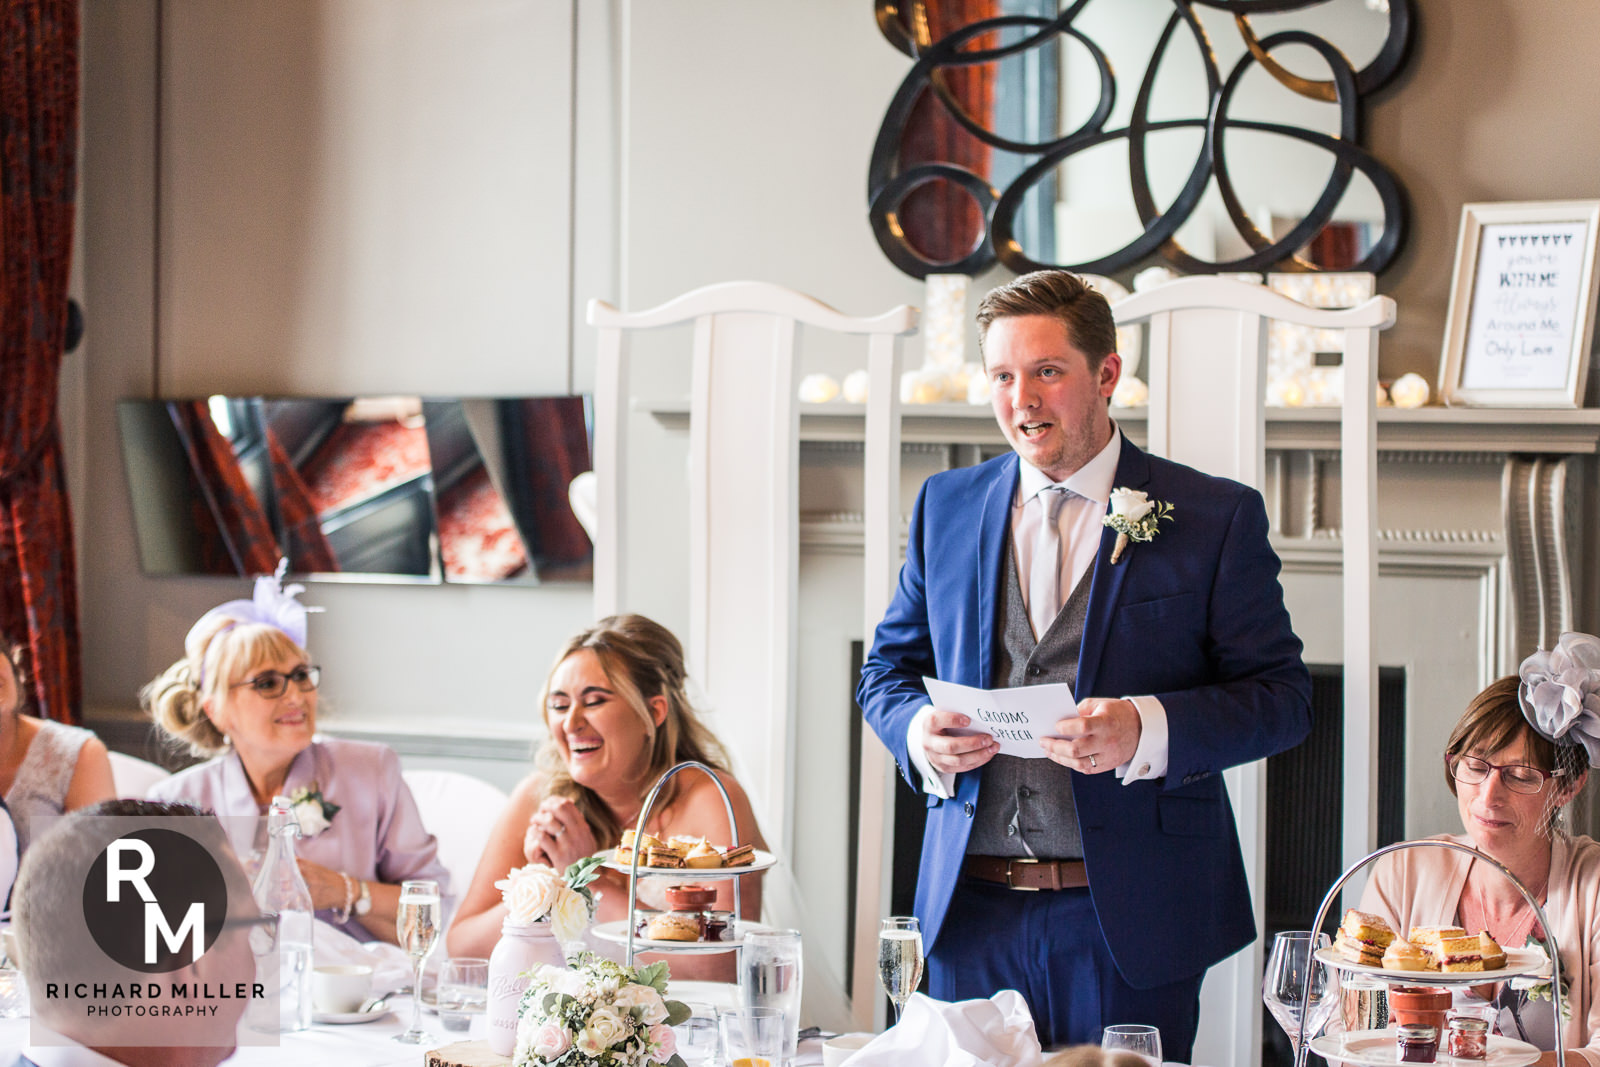 Dale Natalie Web 329 - An Awesome Chester Wedding at Oddfellows